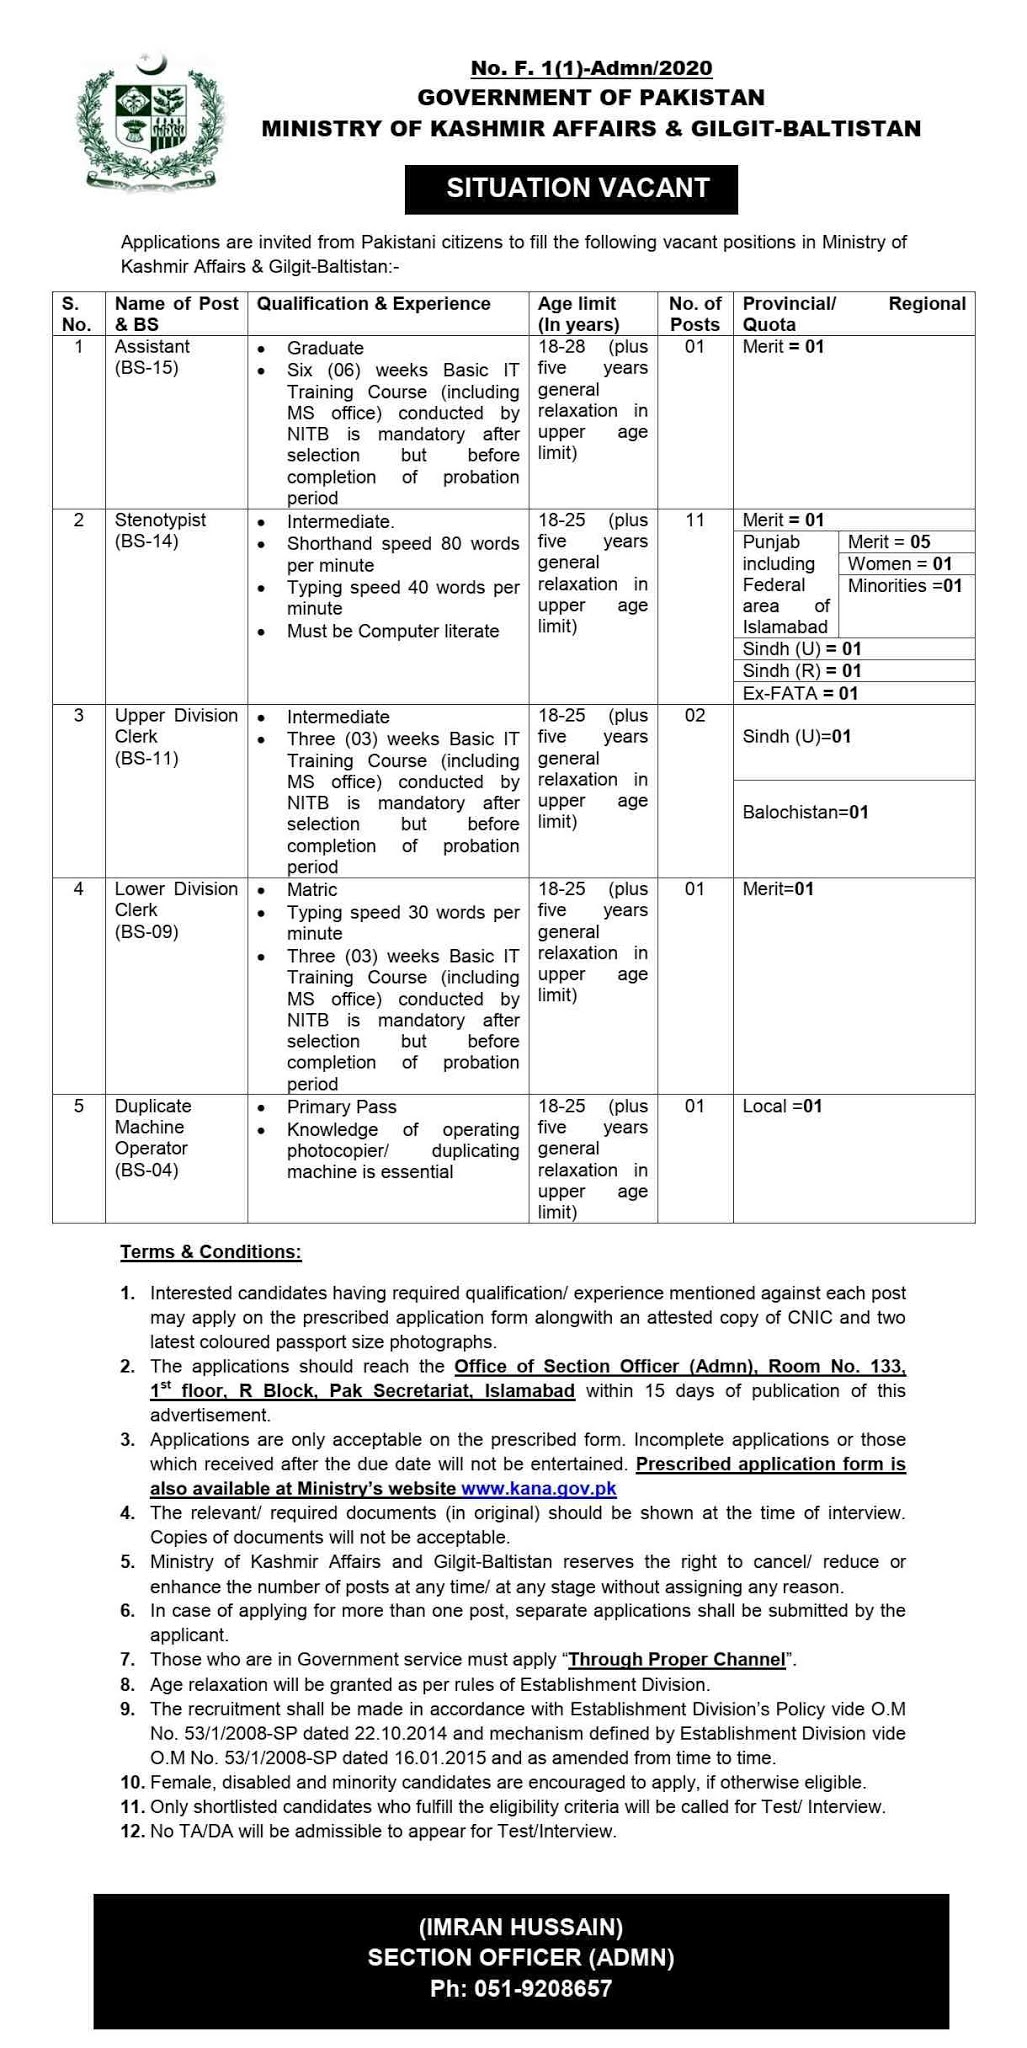 Government of Pakistan Jobs 2020 for Assistant, Stenotypist, UDC, LDC & more